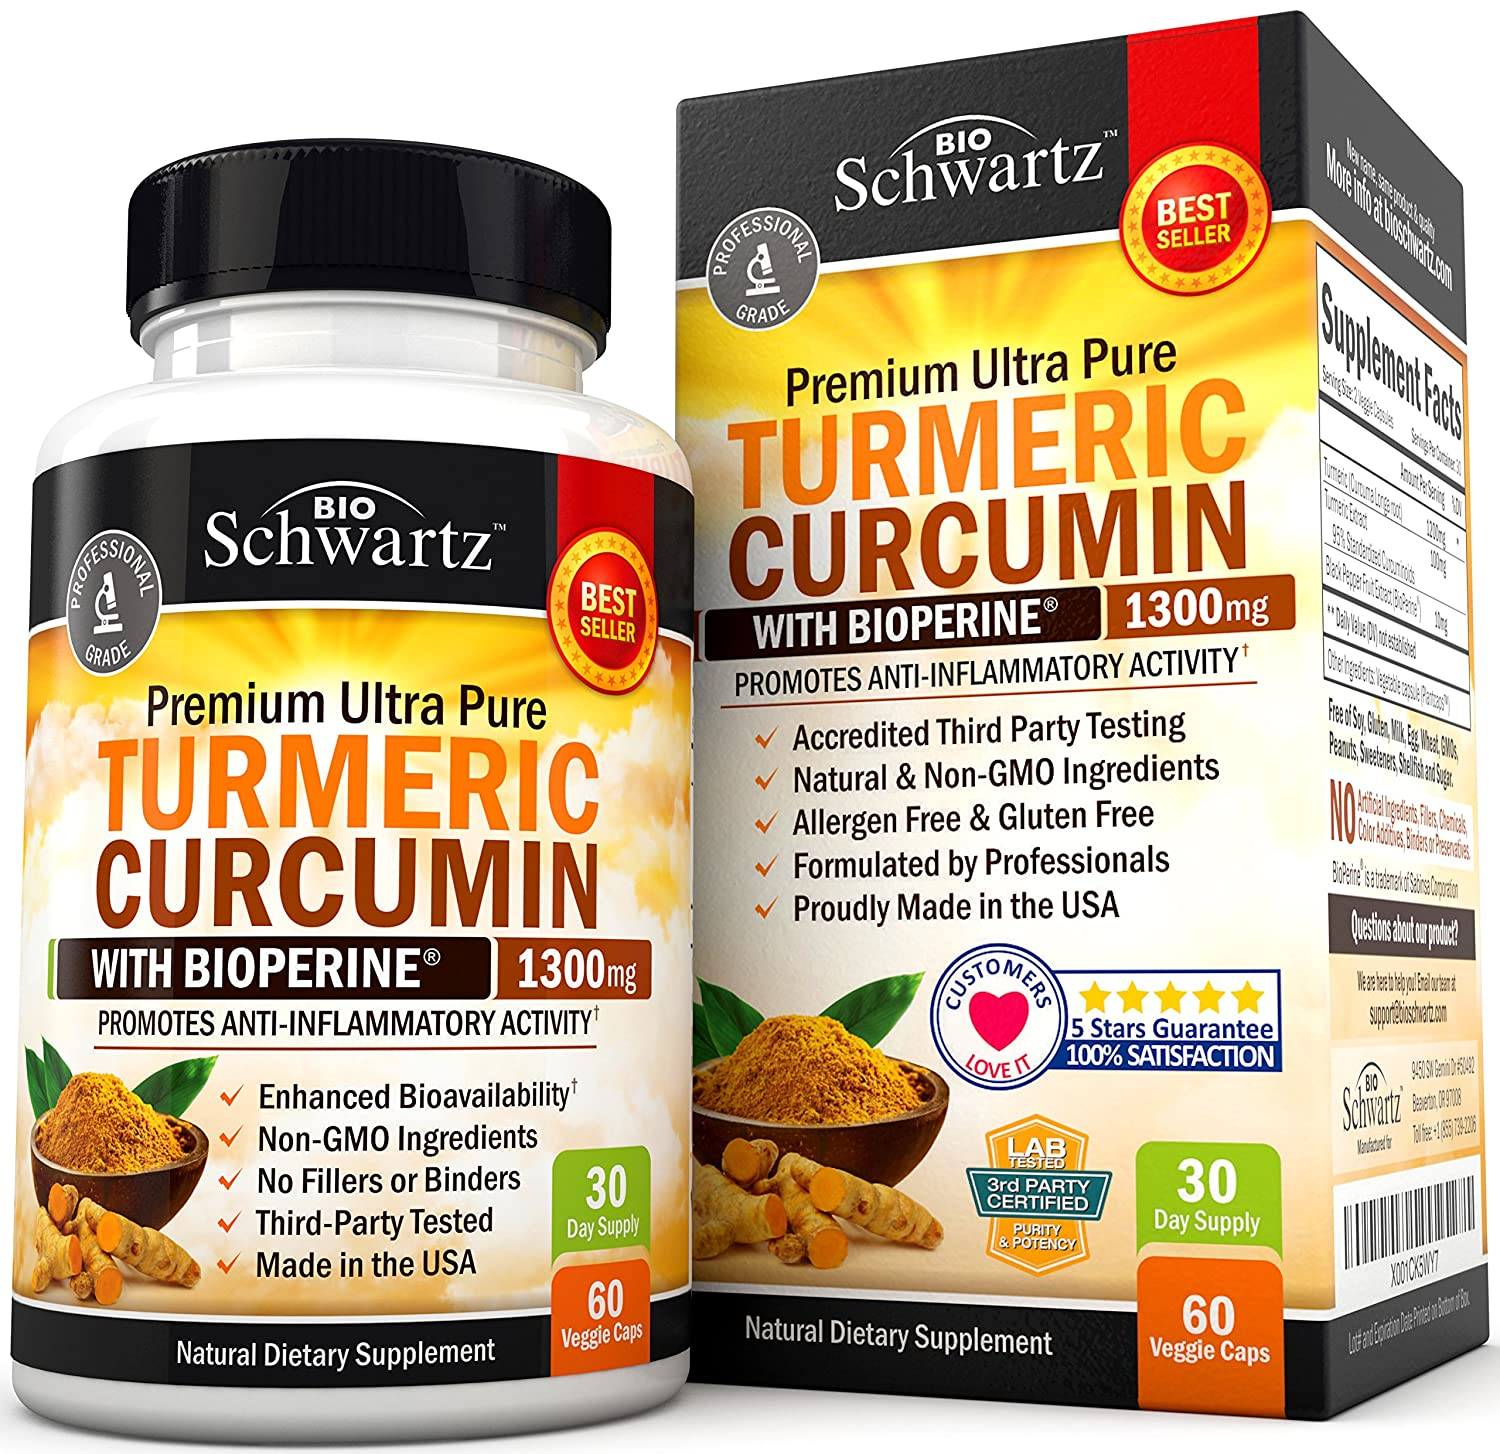 Turmeric Curcumin 1300mg with 95% Standardized Curcumin (Curcuminoids) - Extra Strength Turmeric Powder Helps with Inflammation, Arthritis and Joint Pain. Made in the USA. Money Back Guarantee B01DSWCNL0